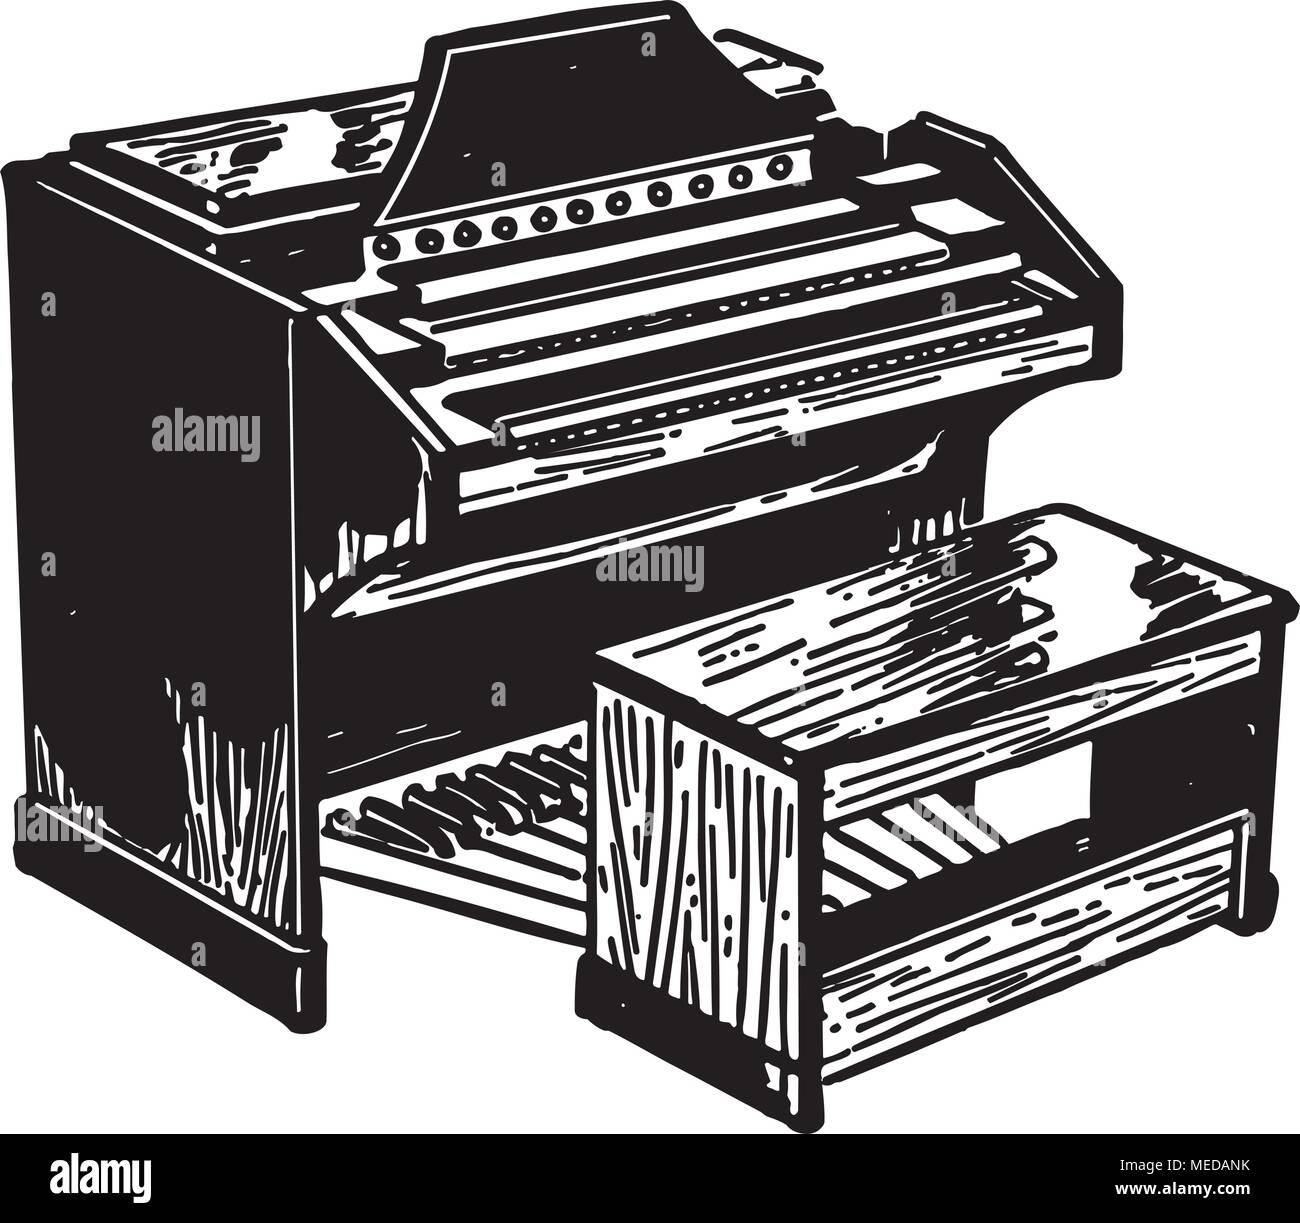 Electric Organ - Retro Clipart Illustration - Stock Image